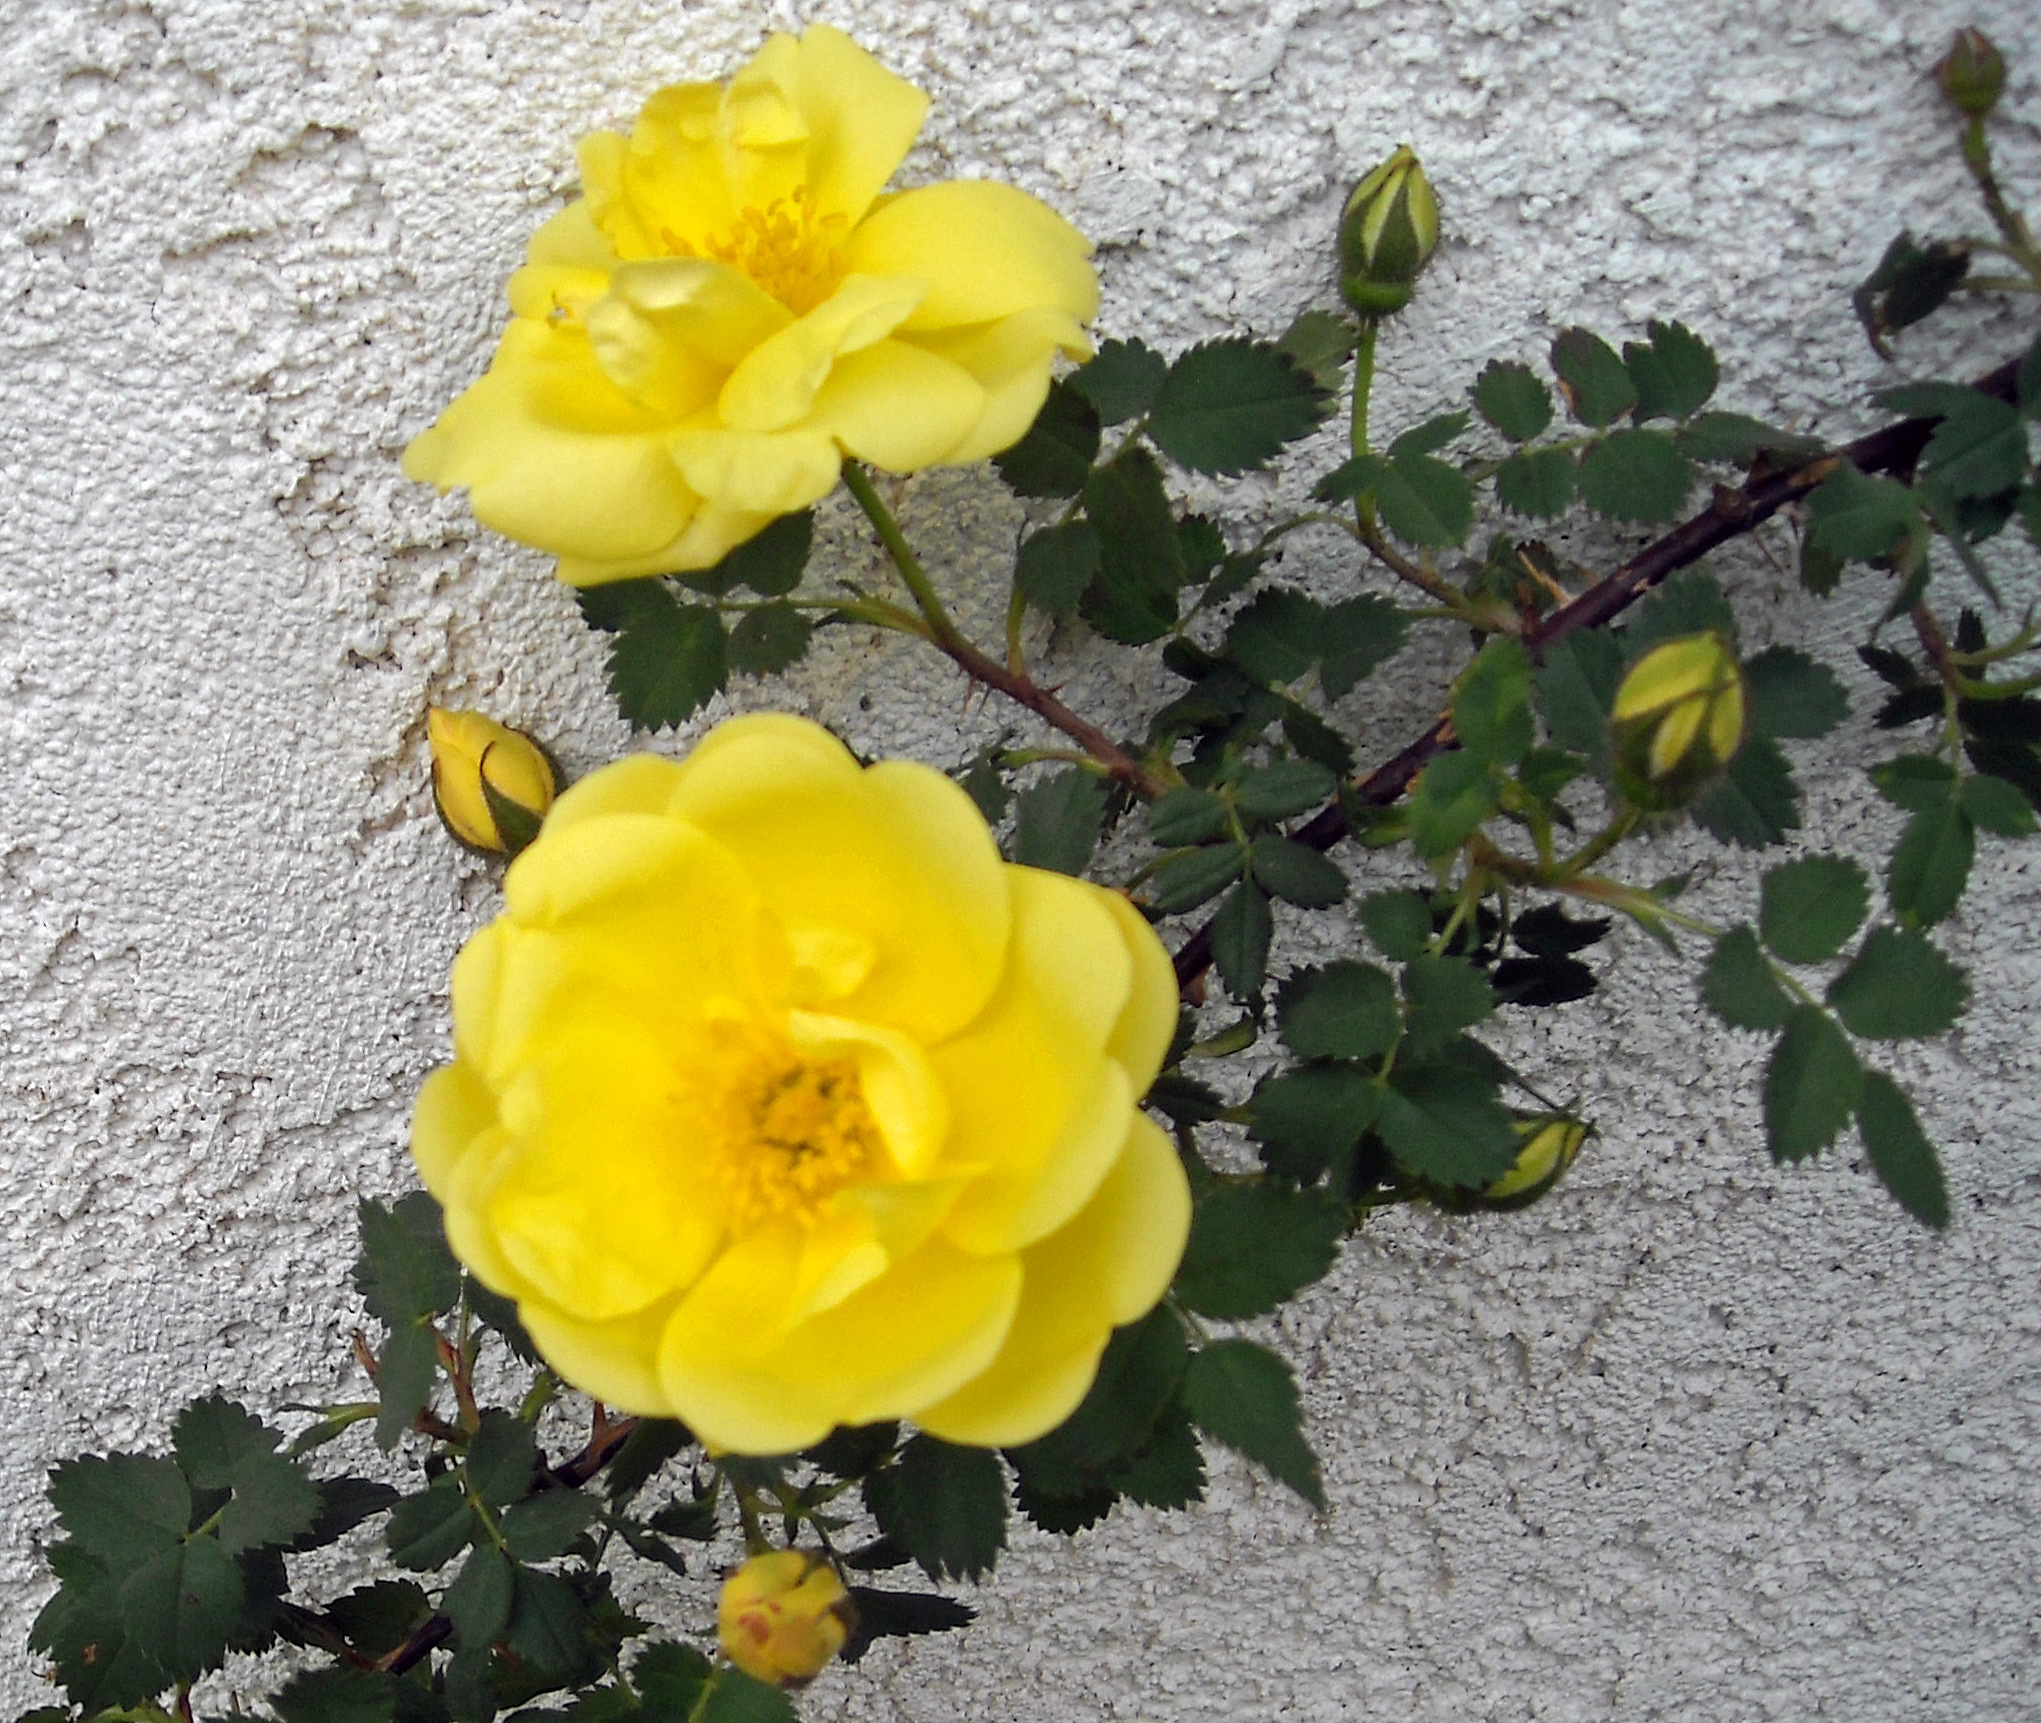 Classic beauties: You can t beat an old-fashioned shrub rose, says 65